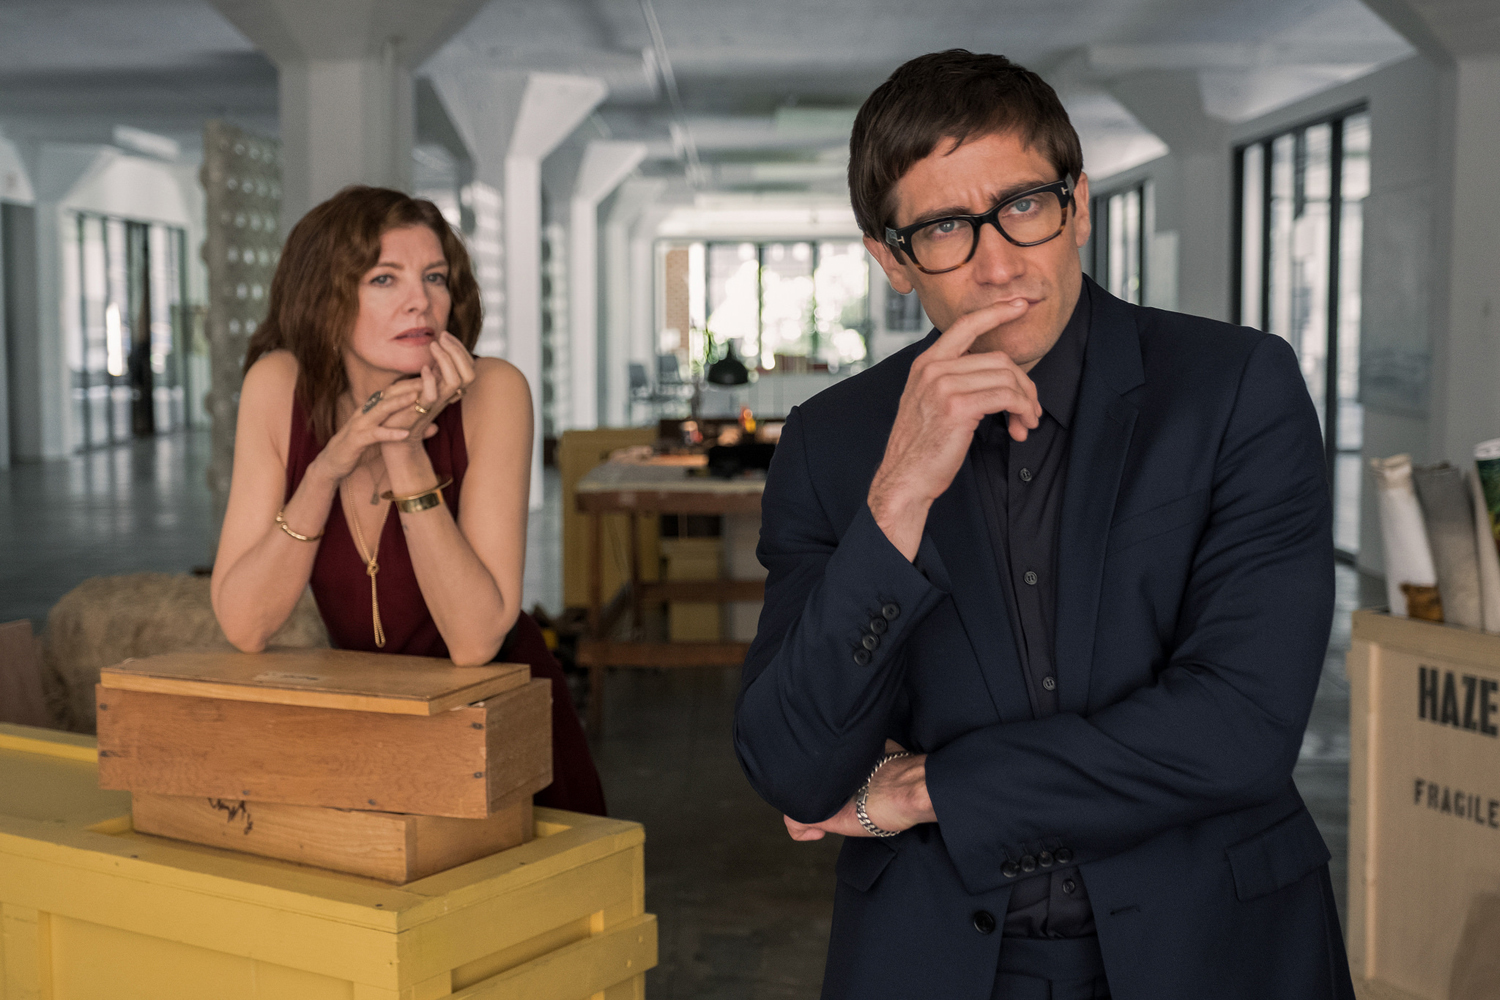 Velvet Buzzsaw Netflix horror movie starring Jake Gyllenhaal